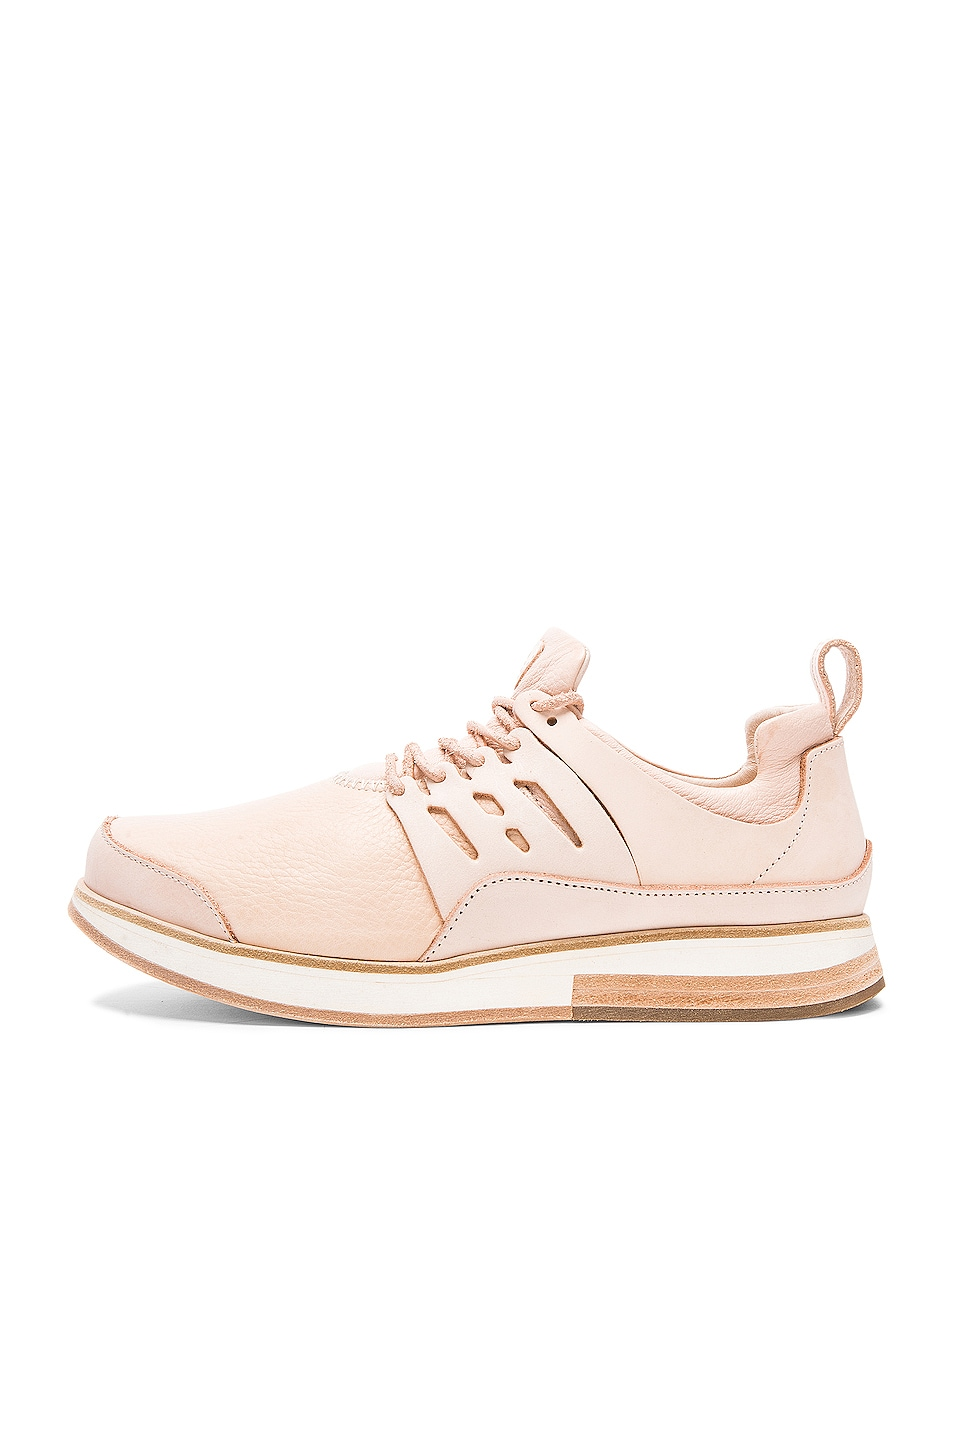 Image 5 of Hender Scheme Manual Industrial Product 12 in Natural